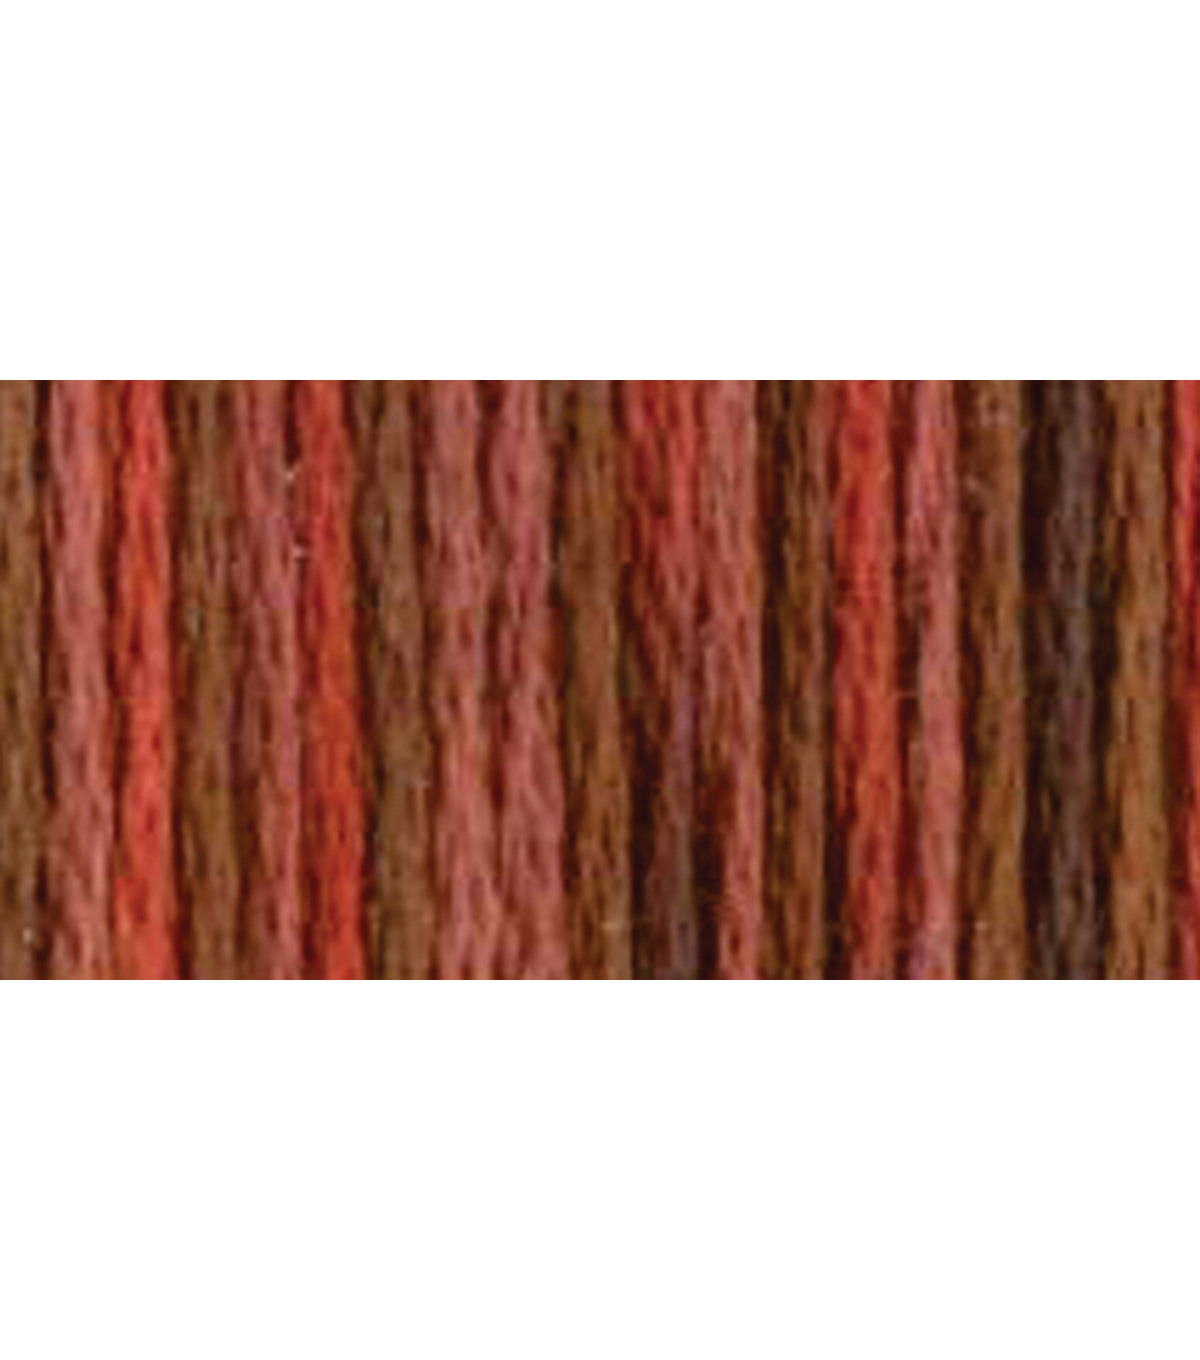 DMC Pearl Cotton Variation Thread 27 Yds Size 5, Terra Cotta